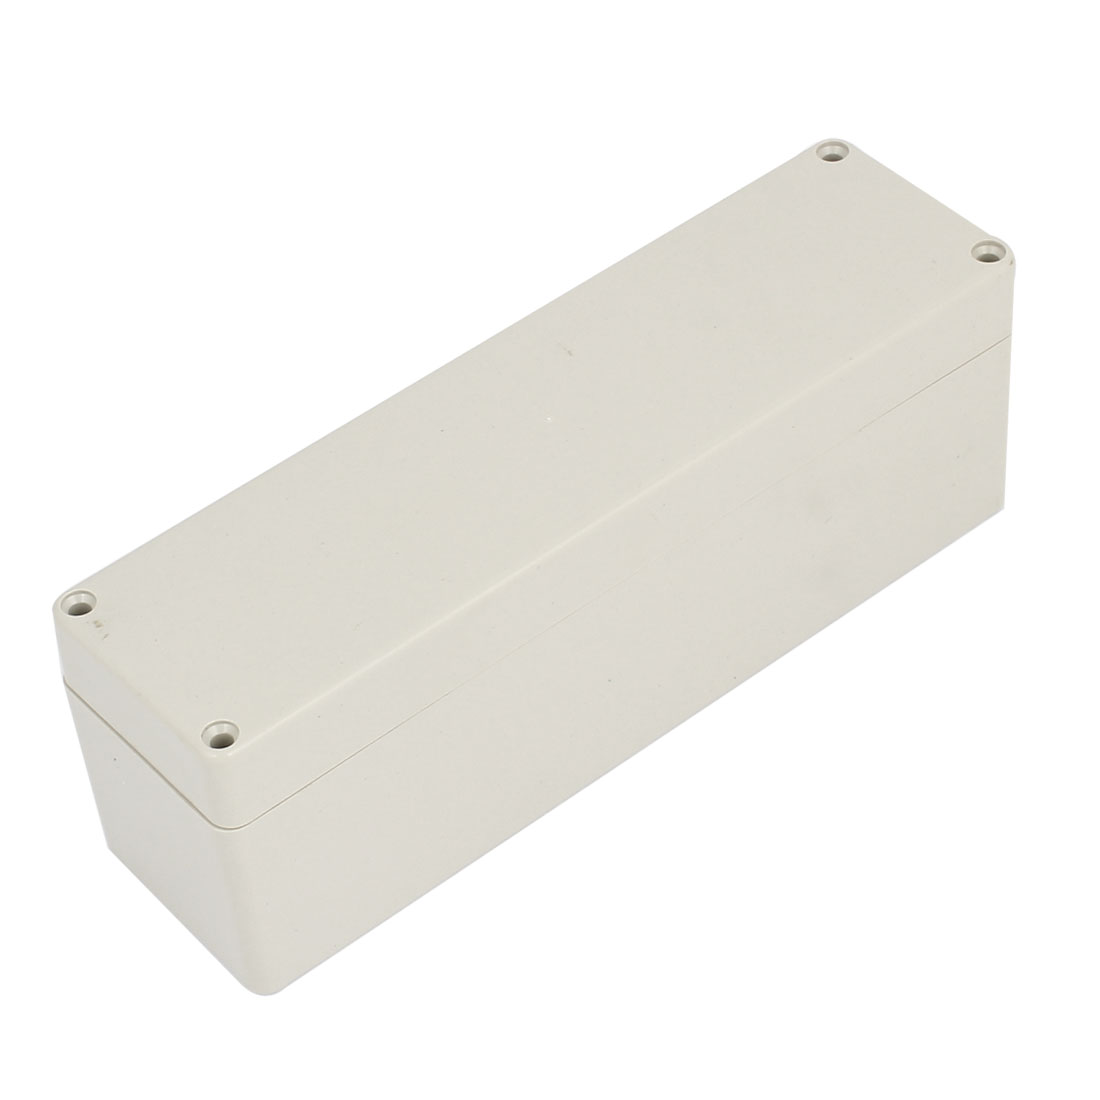 Plastic Waterproof Sealed Power Protector Junction Box 160mmx55mmx45mm